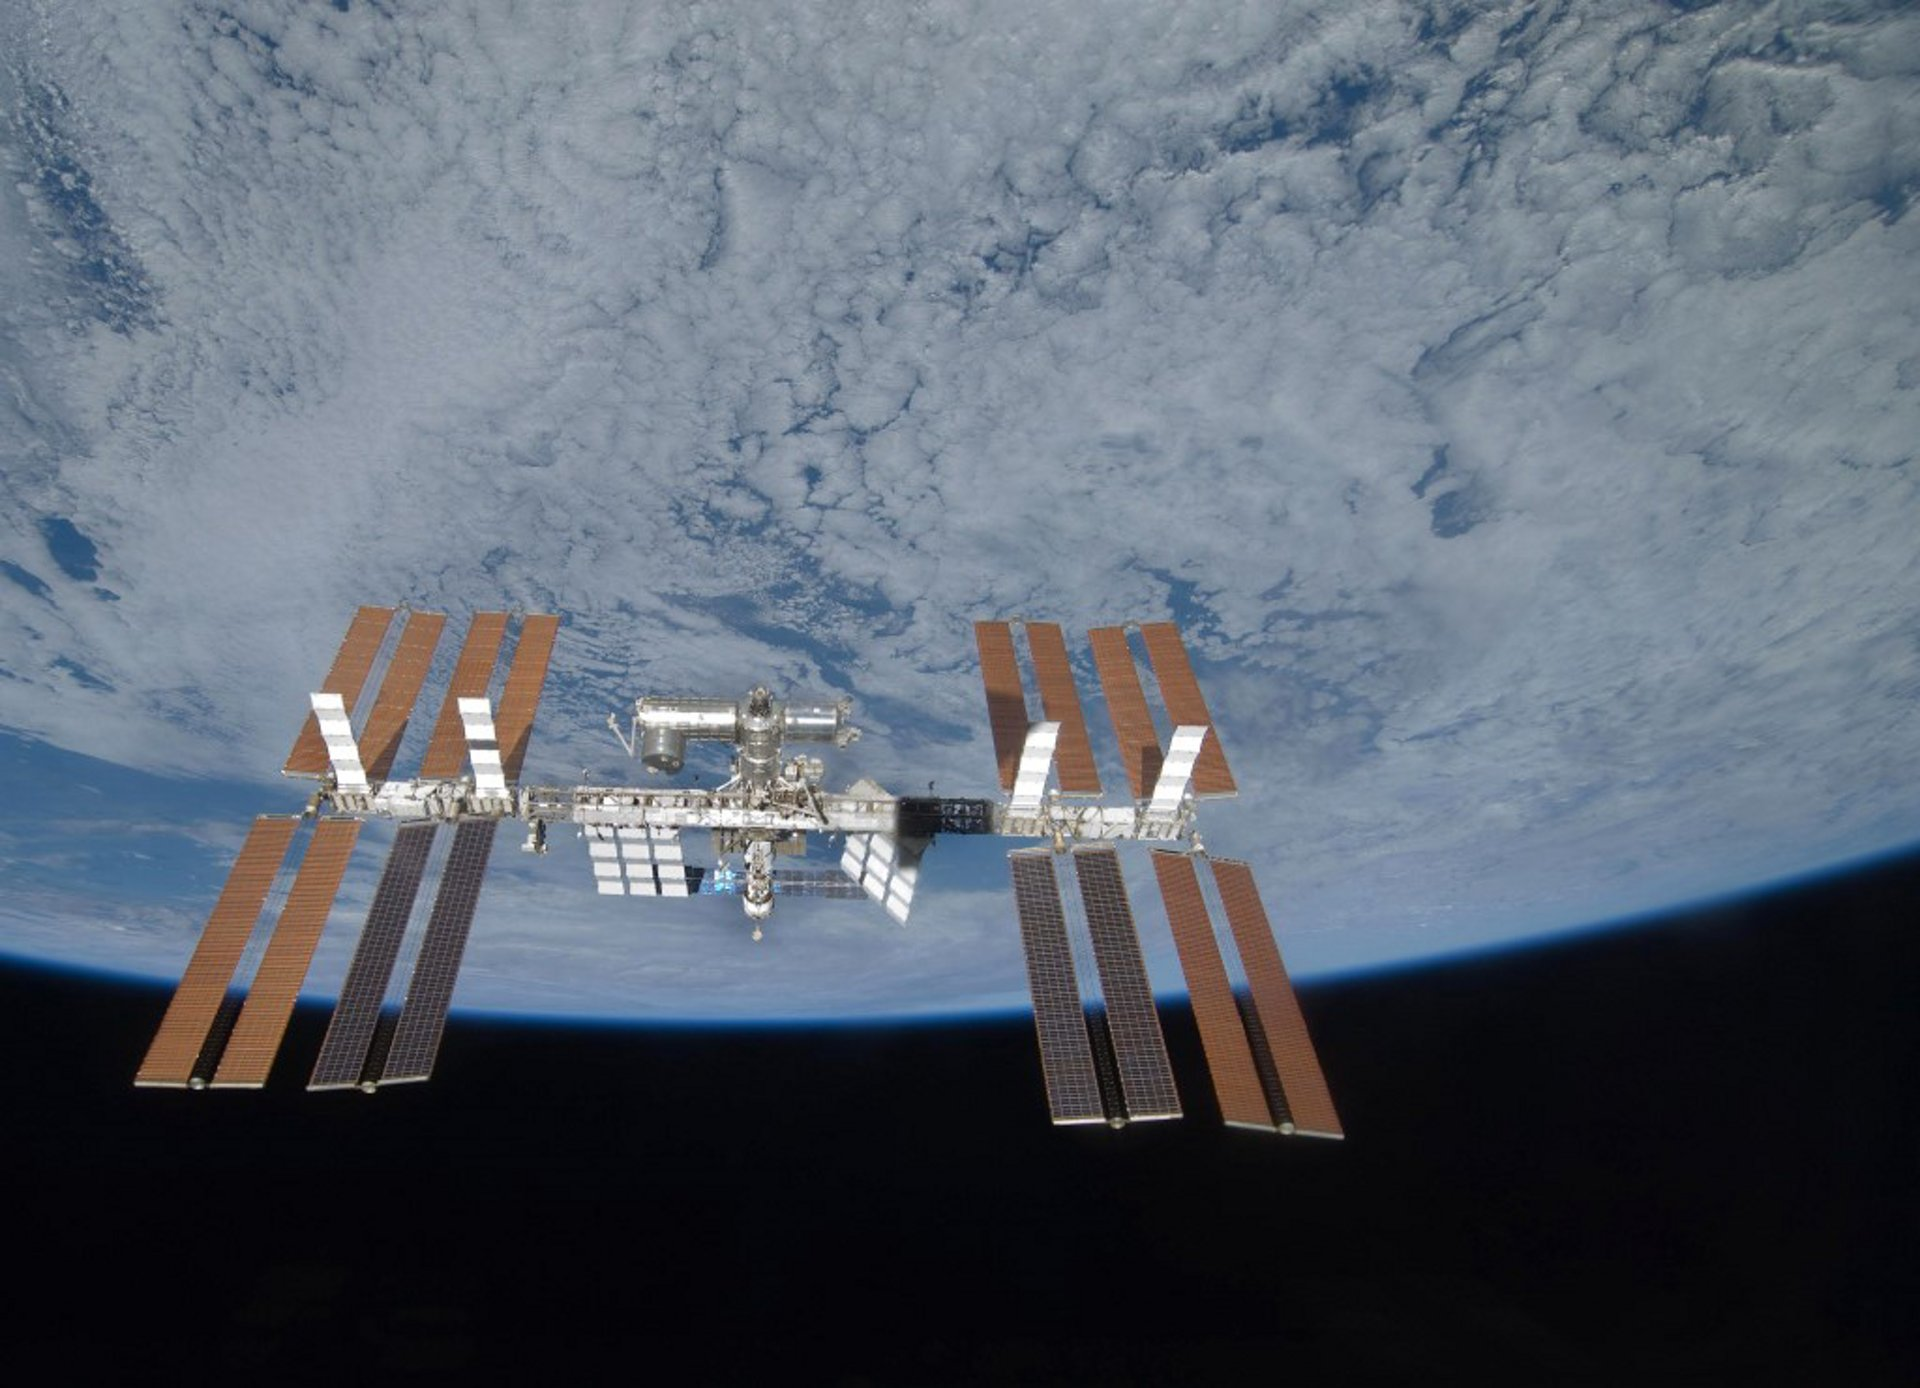 In 2020, the ISS was expanded by the addition of the Airbus-developed 'Bartolomeo' commercial payload platform, enhancing the spectrum of research activities on the space laboratory with a number of additional potential applications.